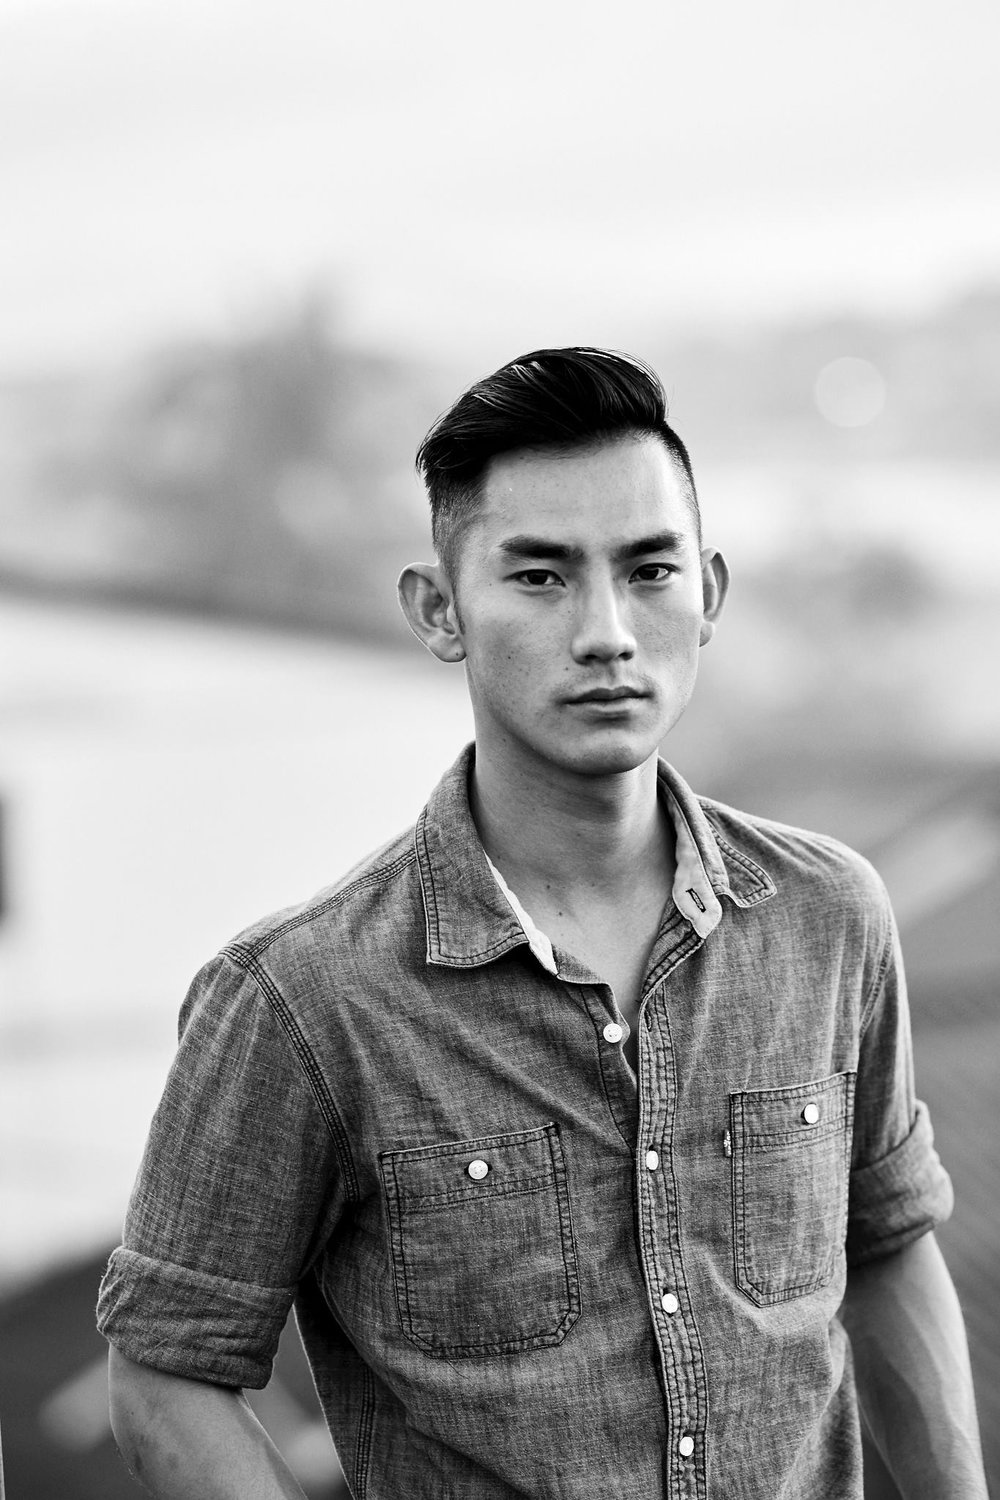 Krysada Binly Phounsiri  is a professional dancer, an award winning poet, and an avid photographer. He immigrated to the U.S. at the age of two from the country of Laos. Krysada is a San Diego based artist ...  Read More   Follow:  @bboylancer